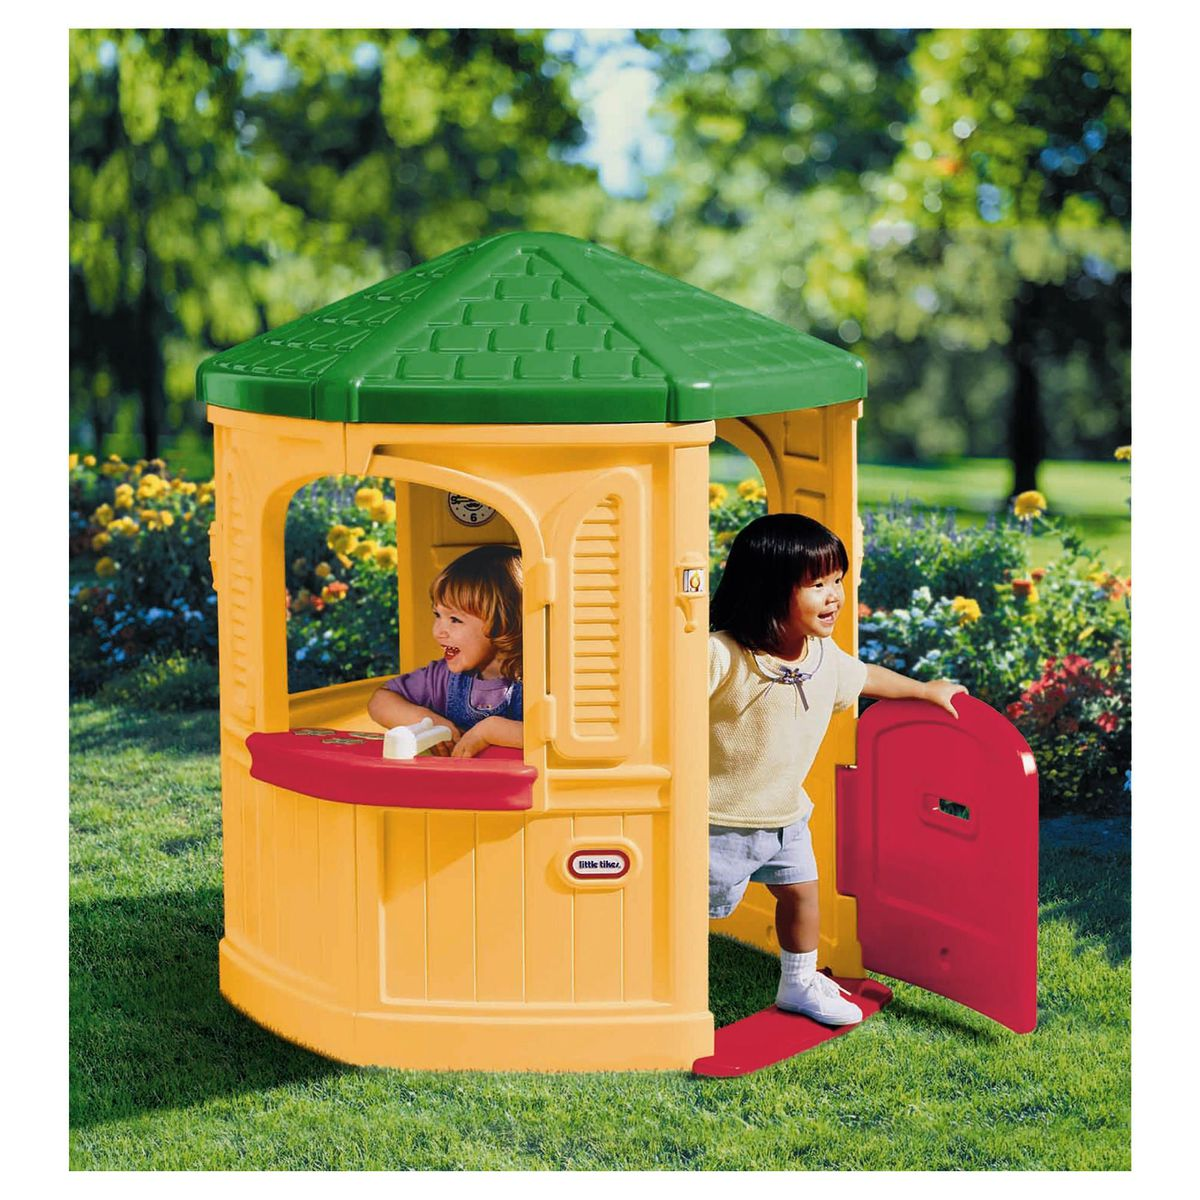 Cosy Little Tikes Home Garden Playhouse.  Little Tikes Cozy Cottage Play House Buy Online in South Africa